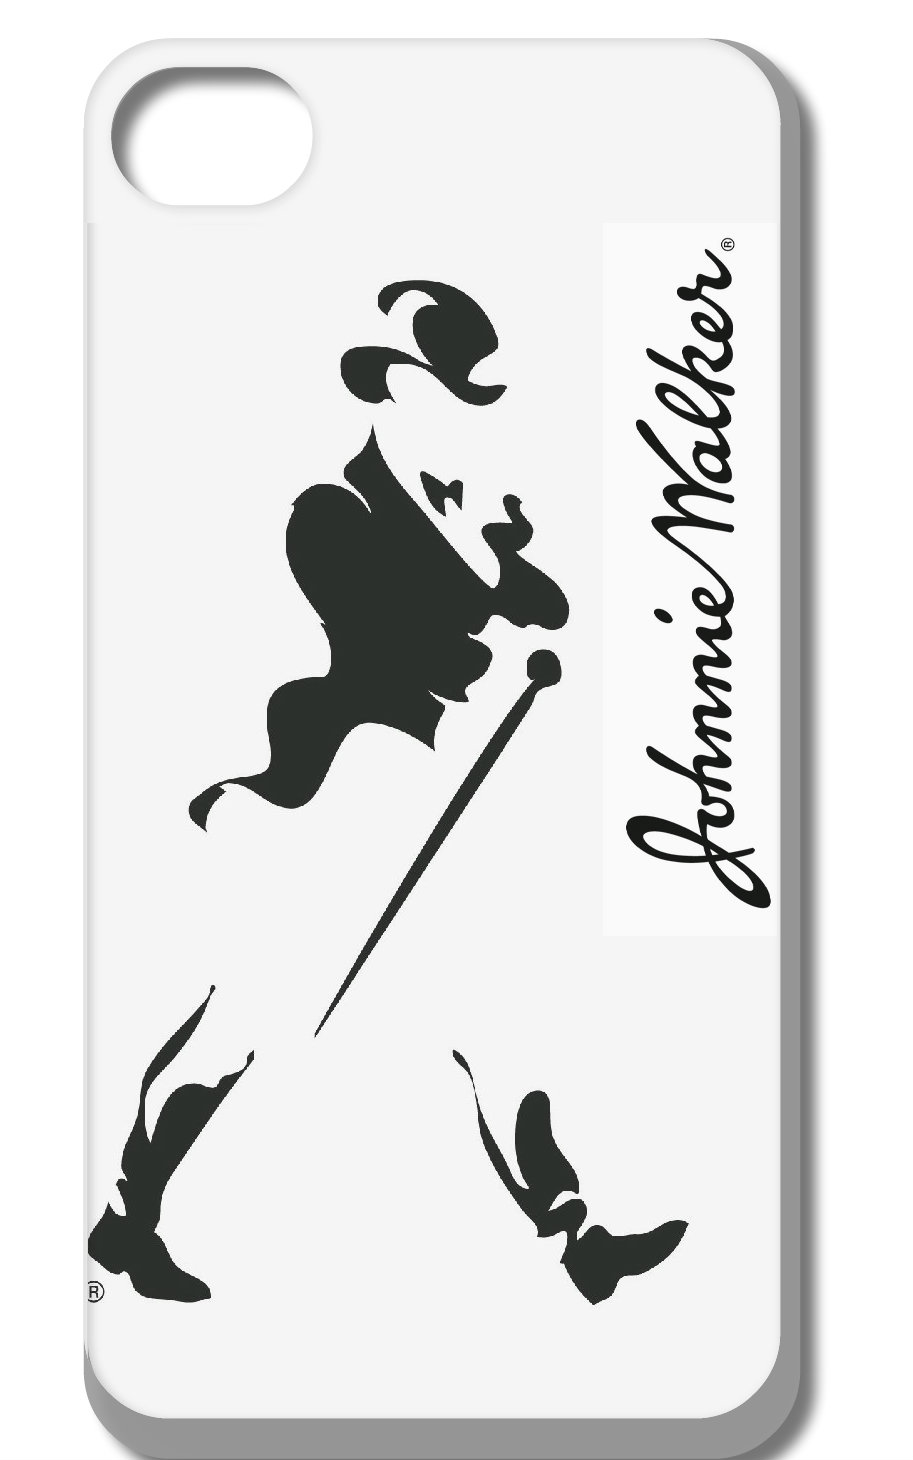 free shipping!2014 new arrival HOT selling johnnie walker designs luxury Black hard case cover for iphone5 5s(China (Mainland))